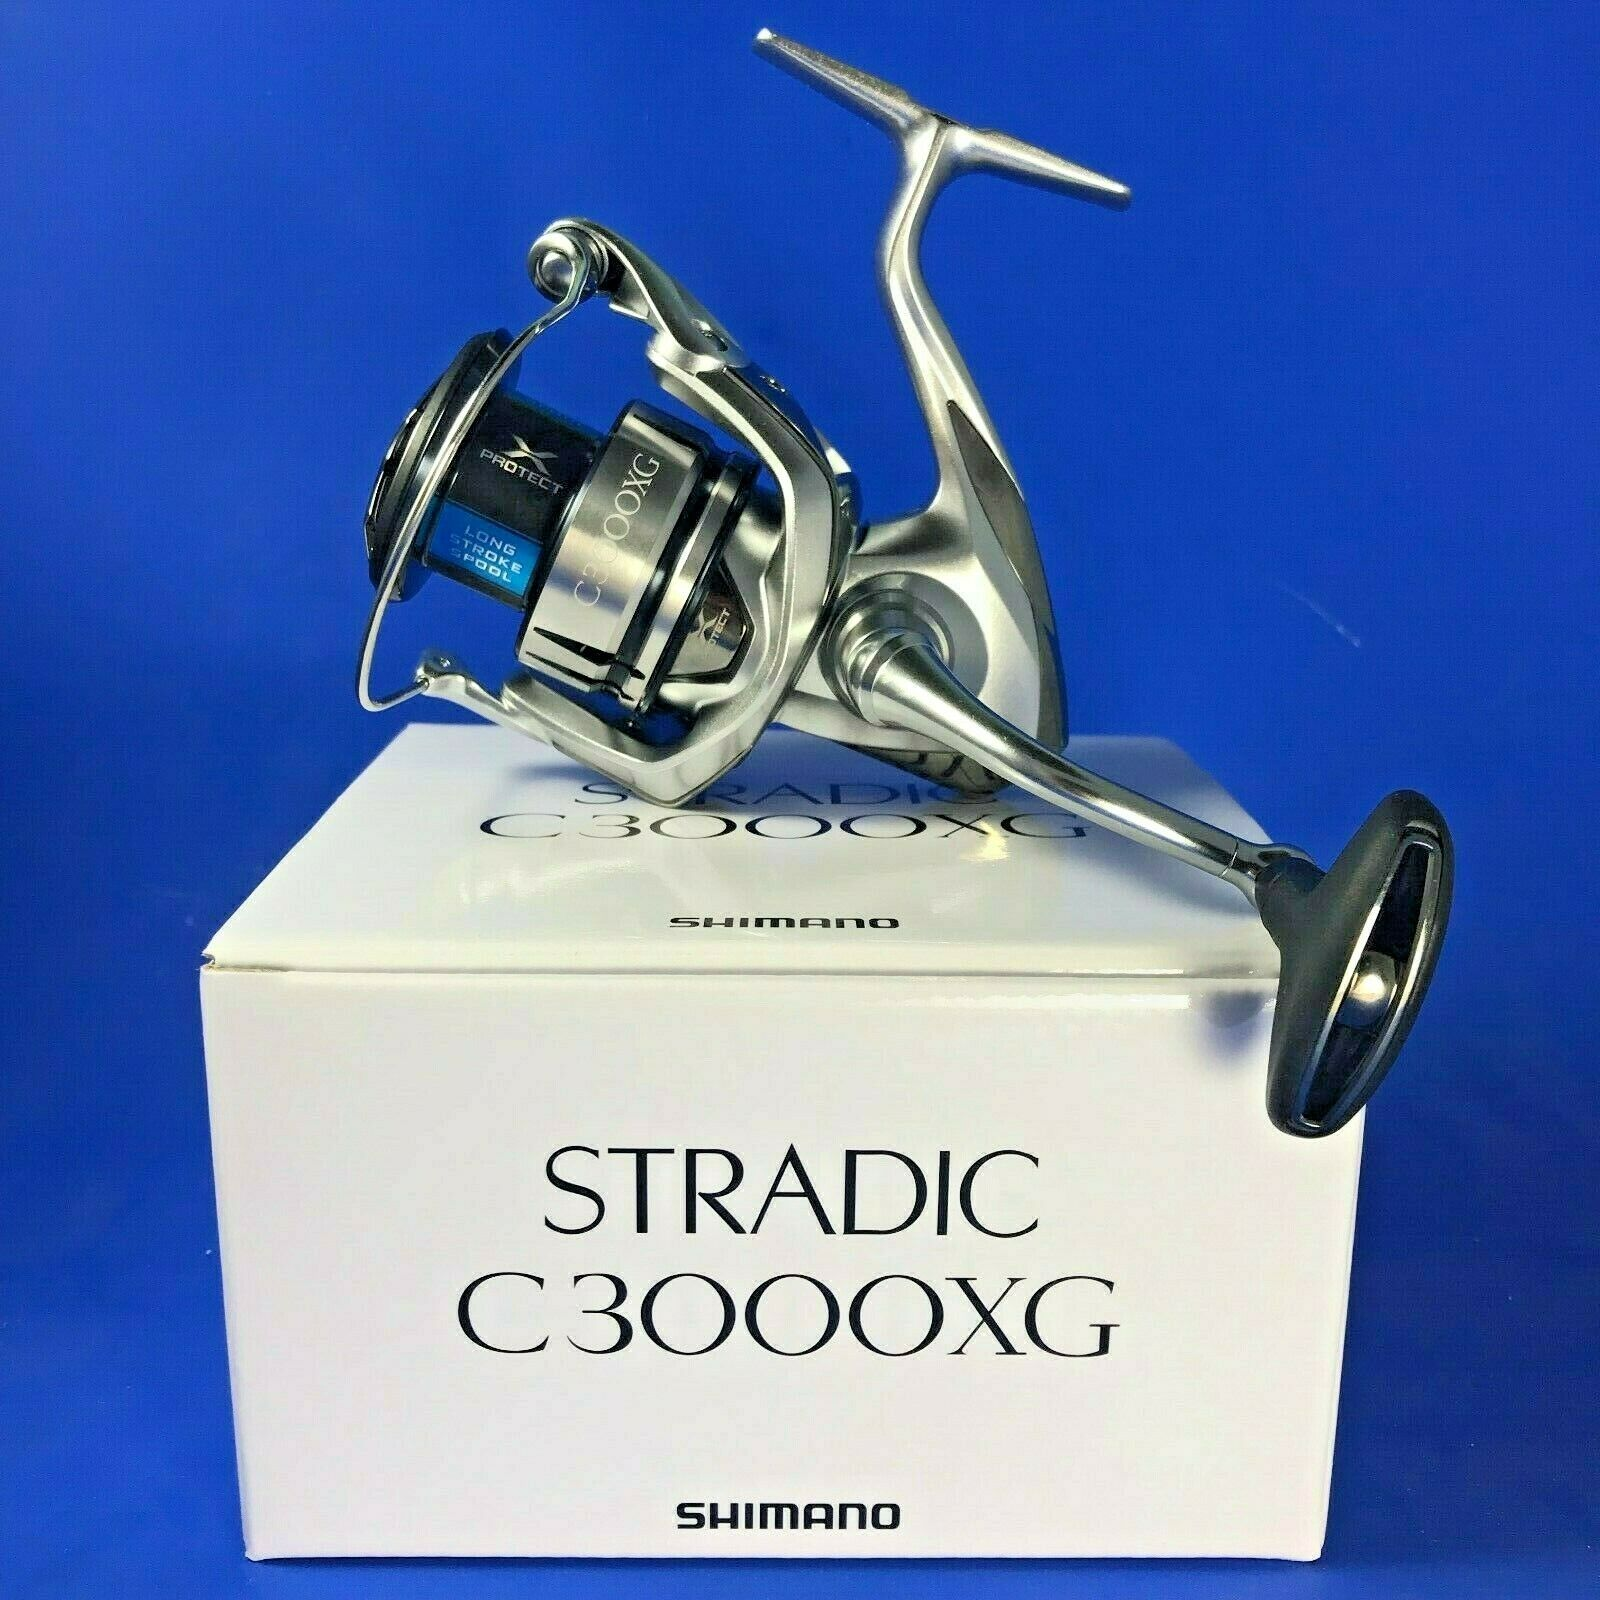 Shimano  Stradic C3000XG FL    STC3000XGFL    Front Drag Fishing Reel NEW 2019  credit guarantee